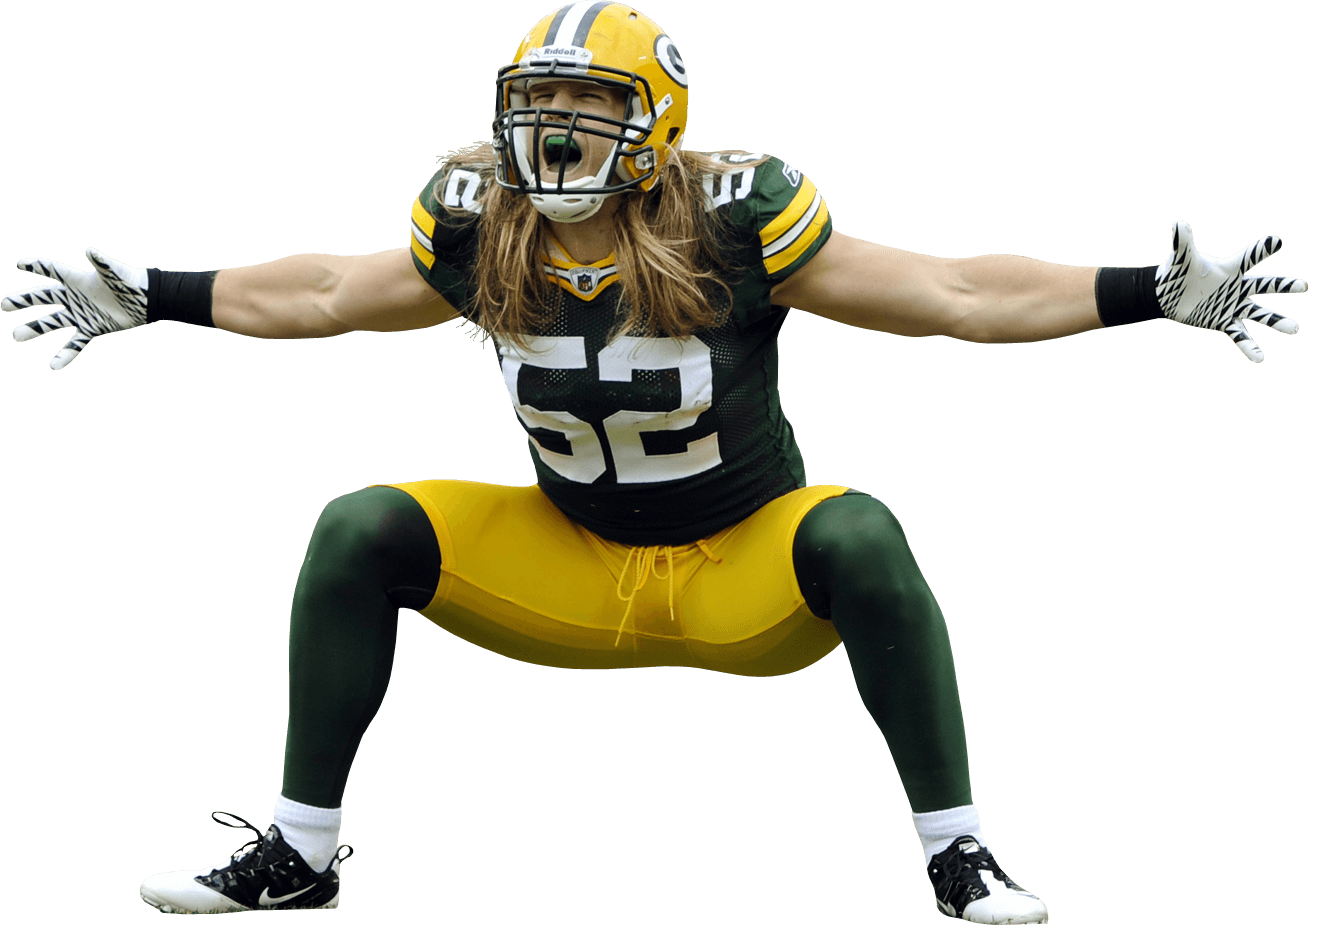 Packers football clipart vector free Green Bay Packers Player Shouting transparent PNG - StickPNG vector free